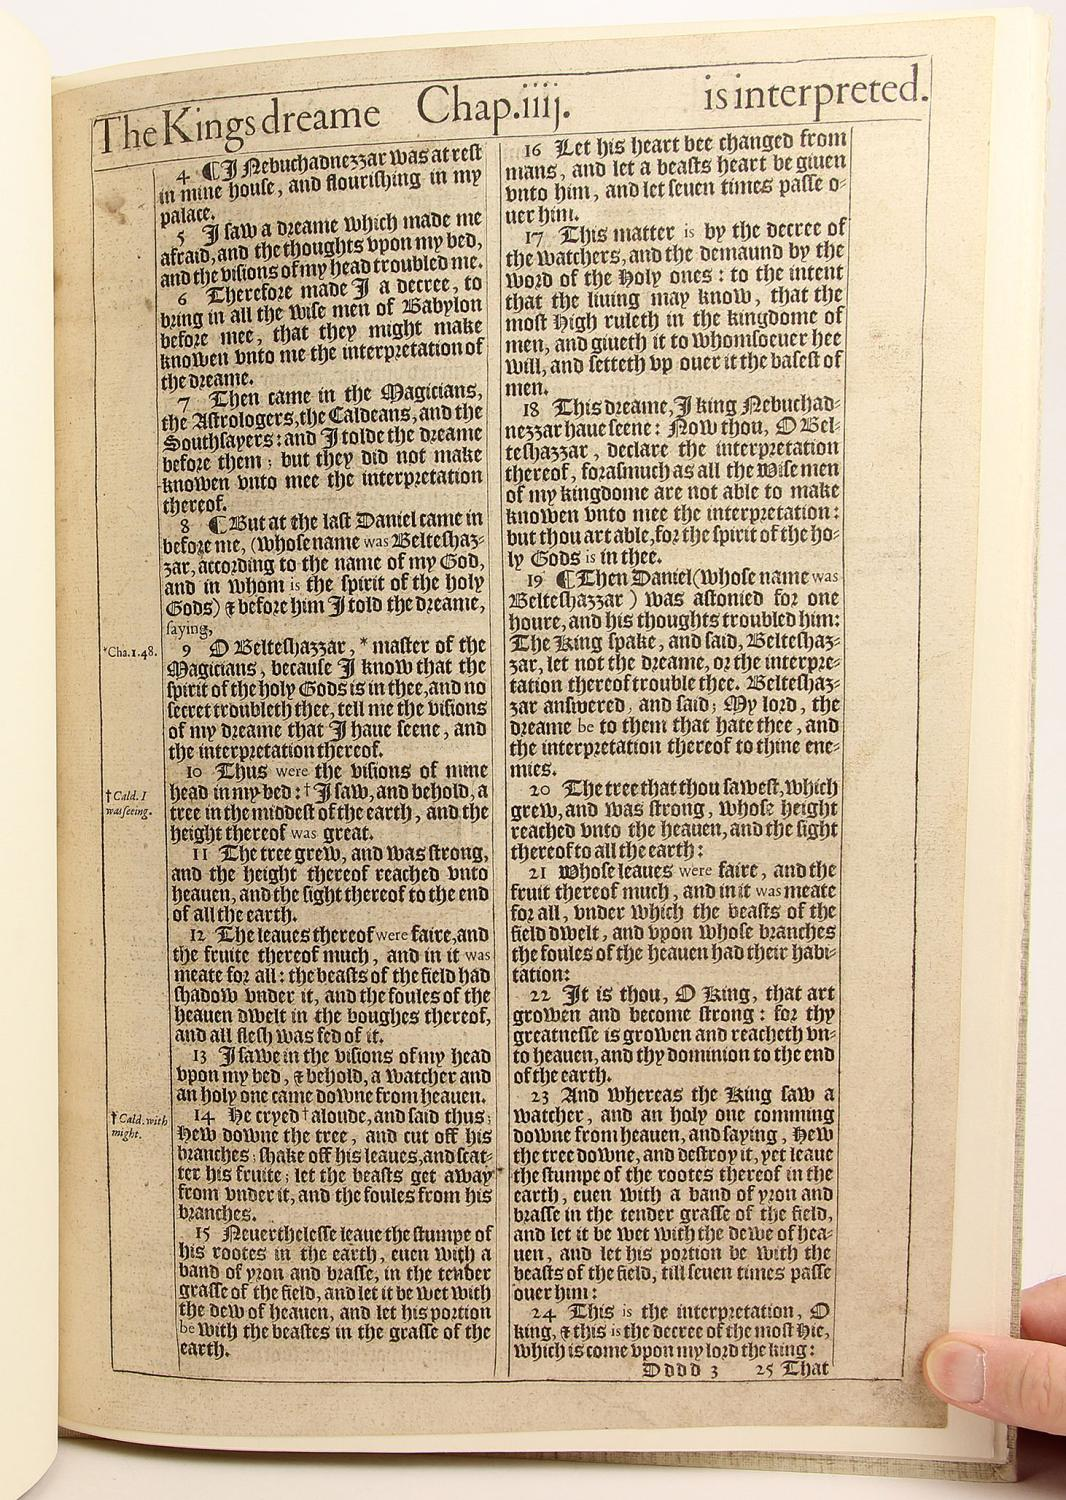 A Leaf from the 1611 King James Bible  With